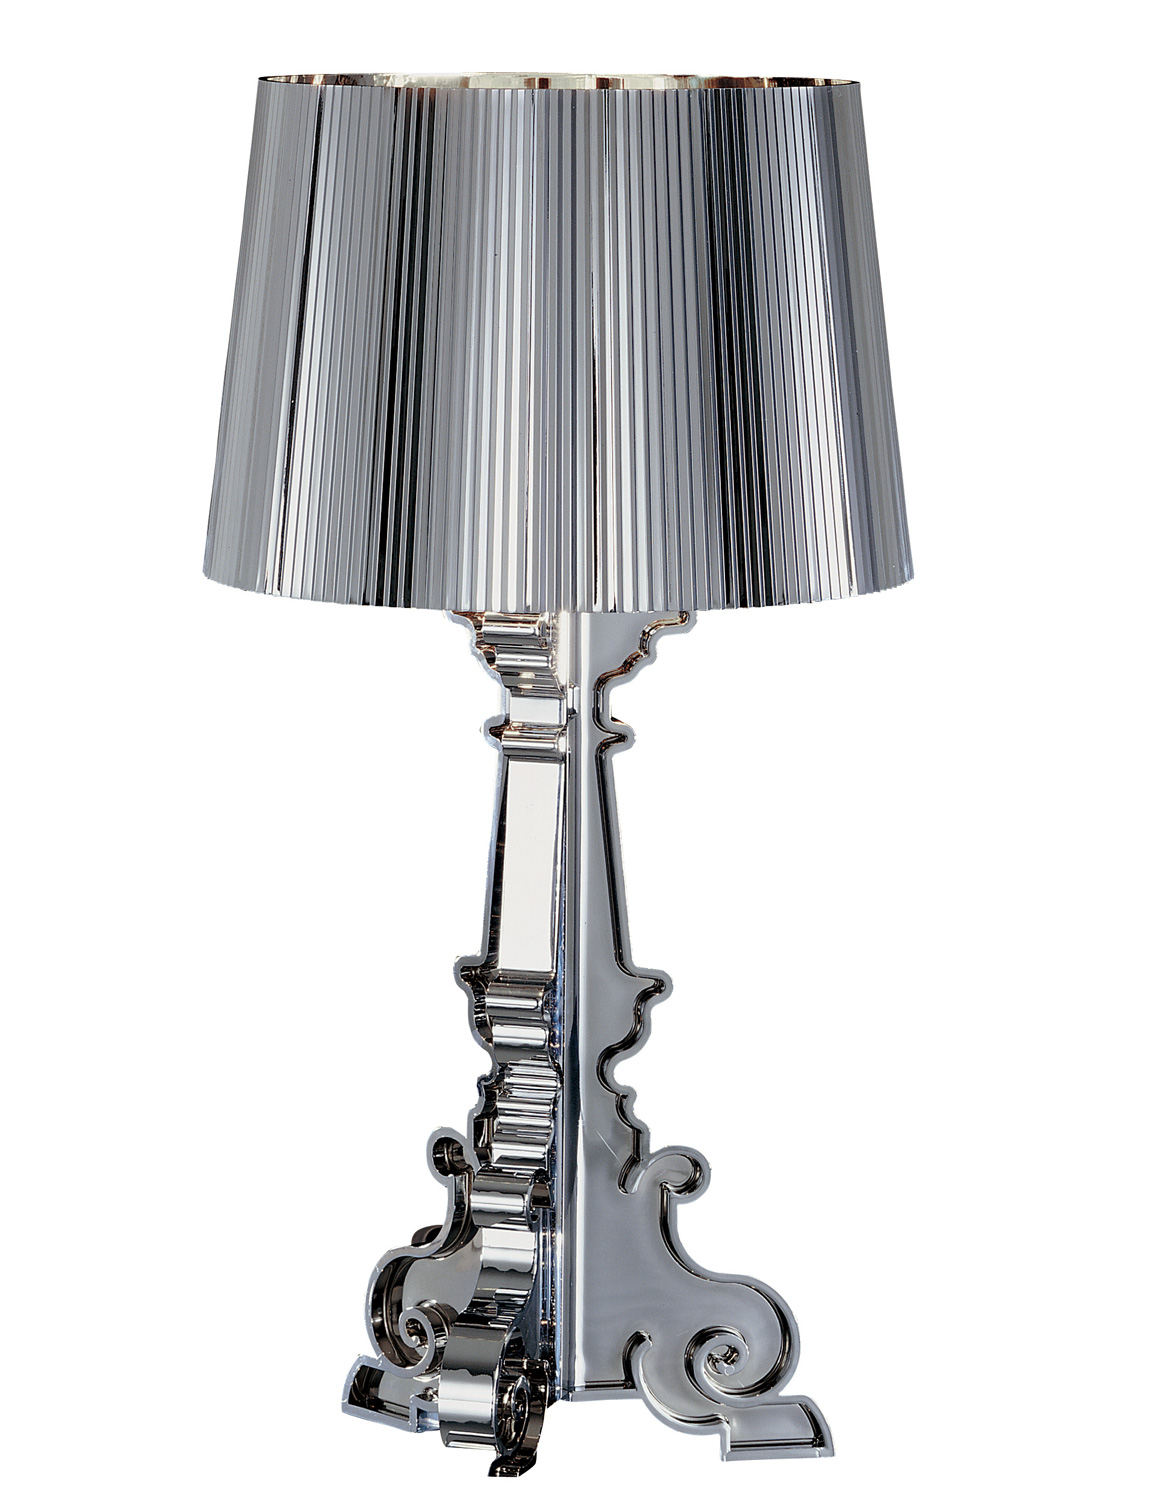 kartell bourgie table lamp metallic with dimmer  - imagen  de bourgie table lamp metallic with dimmer e iba max xw halo